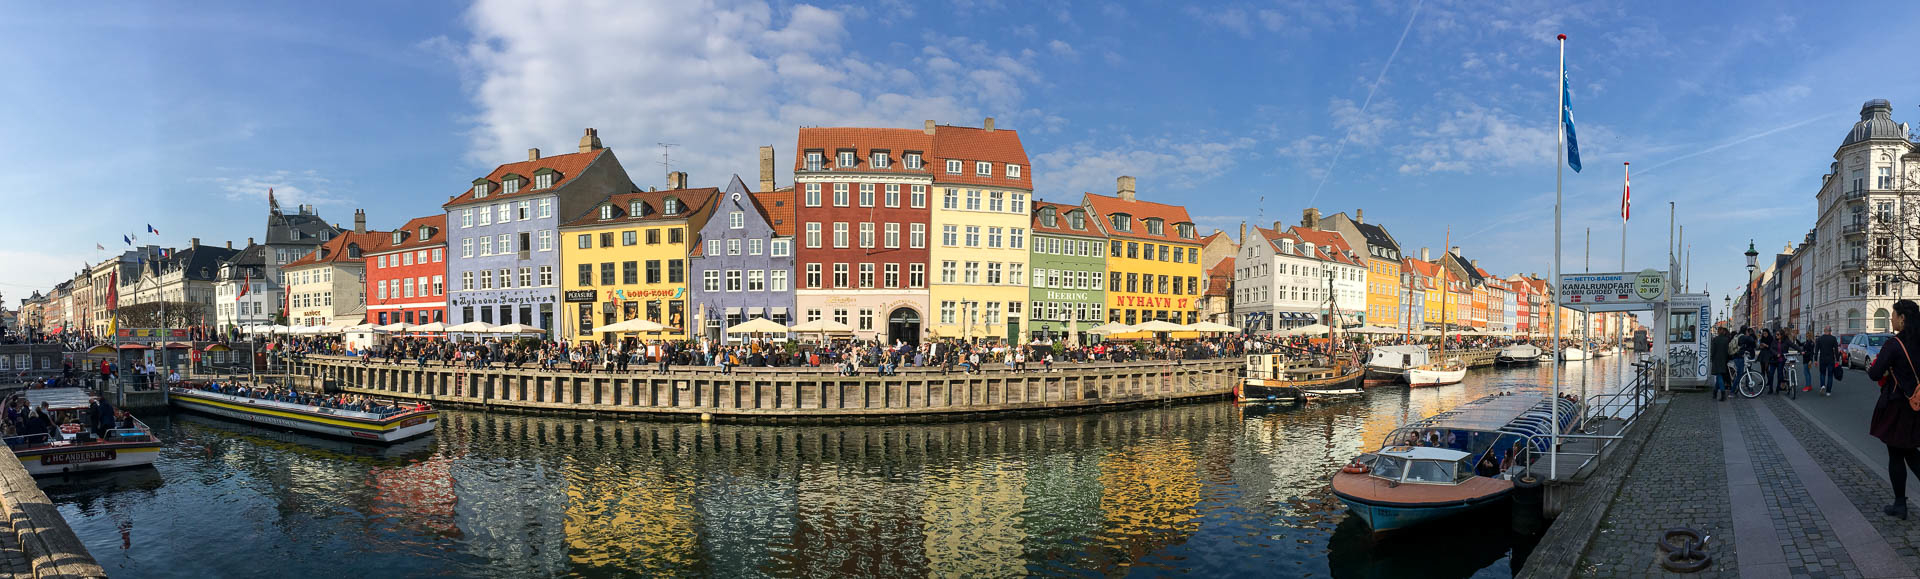 vue panoramique du port de Nyhavn à Copenhague